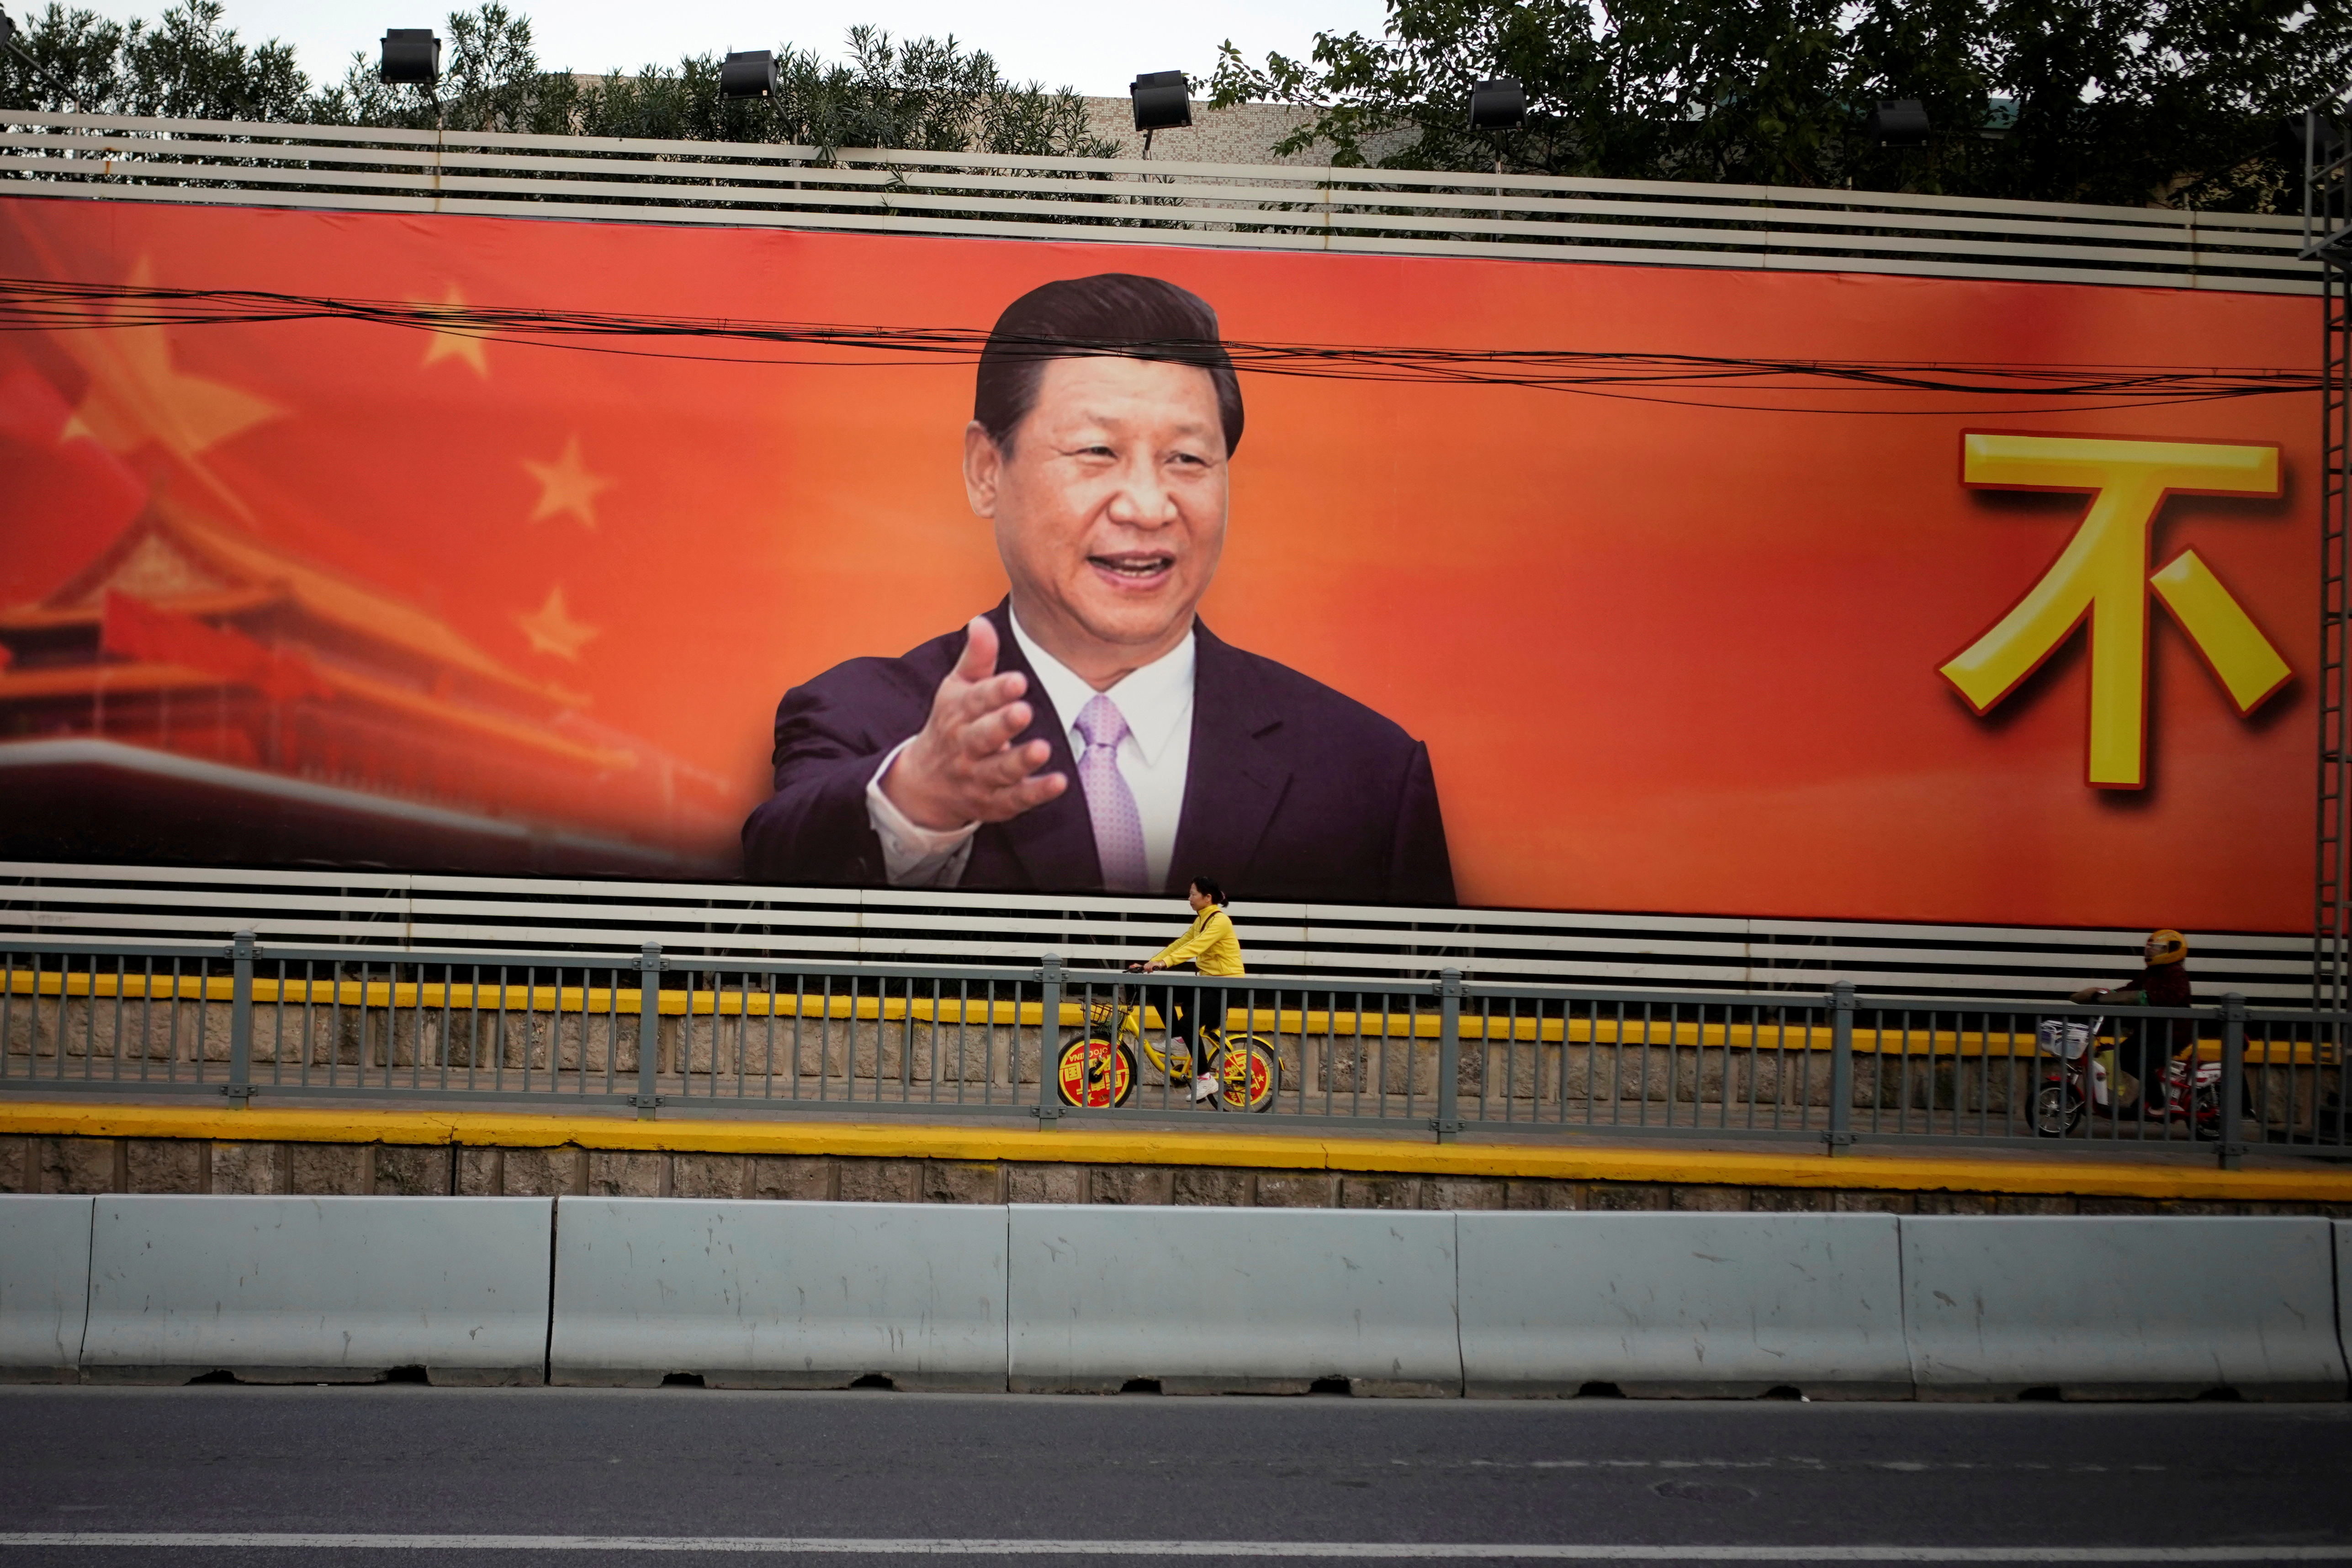 A poster with a portrait of Chinese President Xi Jinping is displayed along a street in Shanghai, China, October 24, 2017.